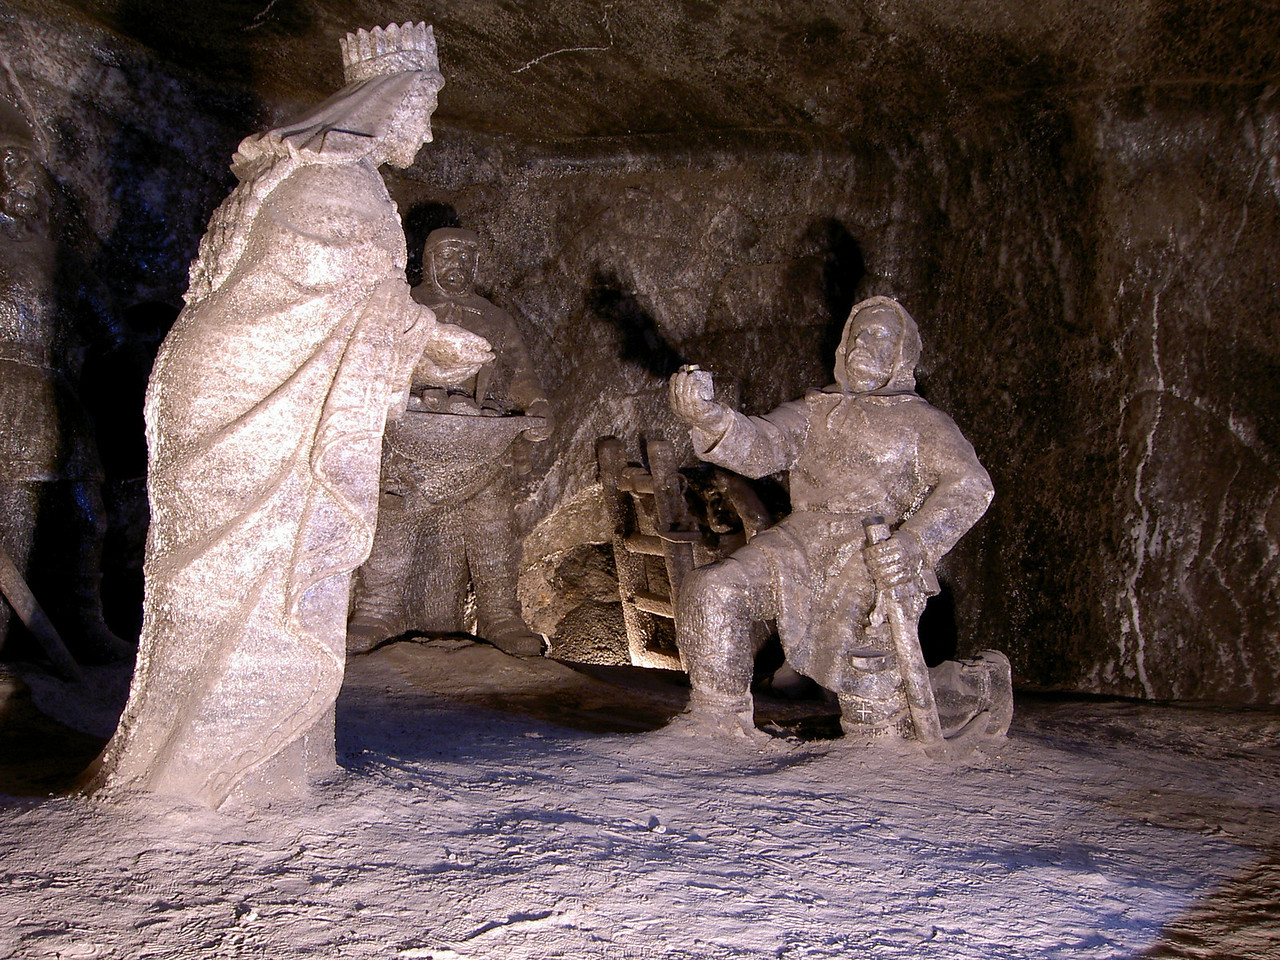 Salt mine in Krakow